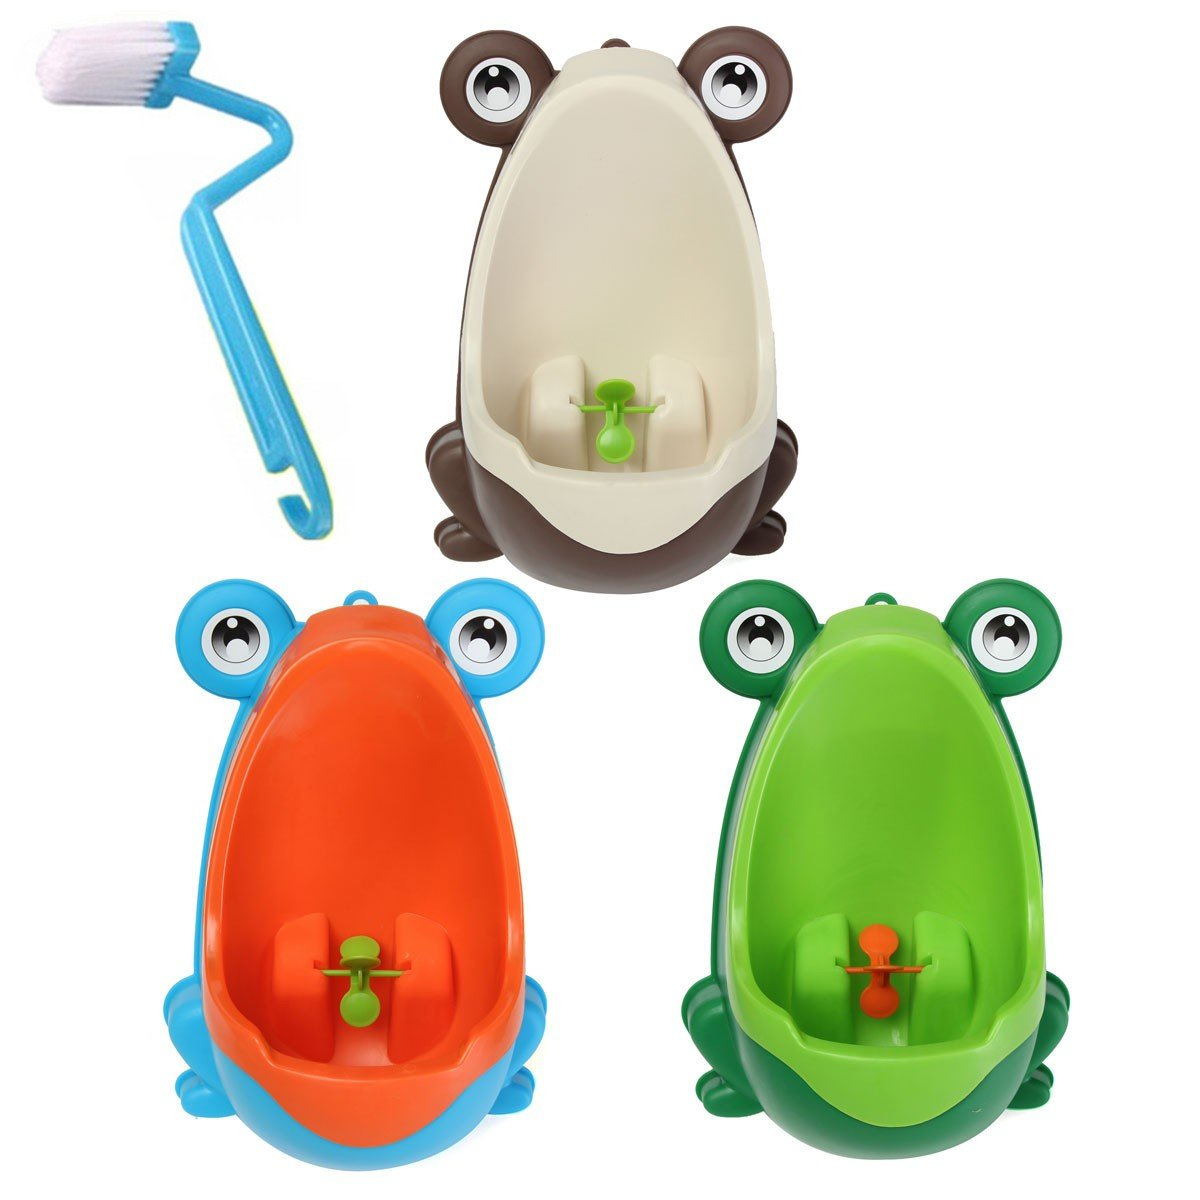 Lovely Frog Children Potty Toilet Training Brush Cleaning Kids Urinal Kid Boy Pee Removable Bathroom